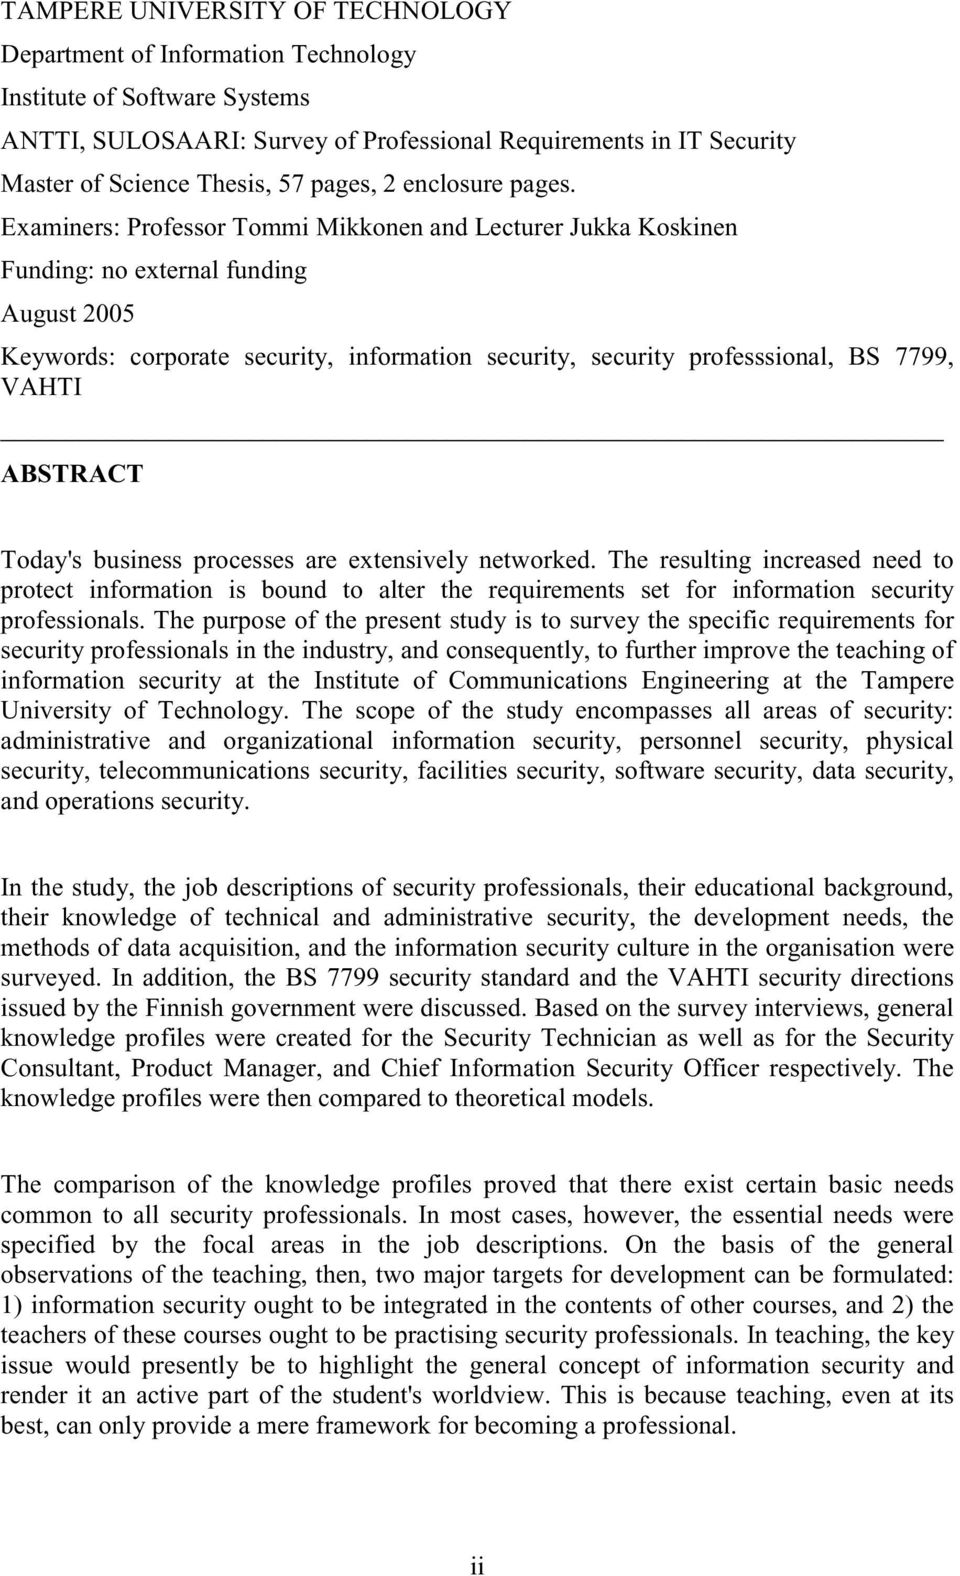 Examiners: Professor Tommi Mikkonen and Lecturer Jukka Koskinen Funding: no external funding August 2005 Keywords: corporate security, information security, security professsional, BS 7799, VAHTI